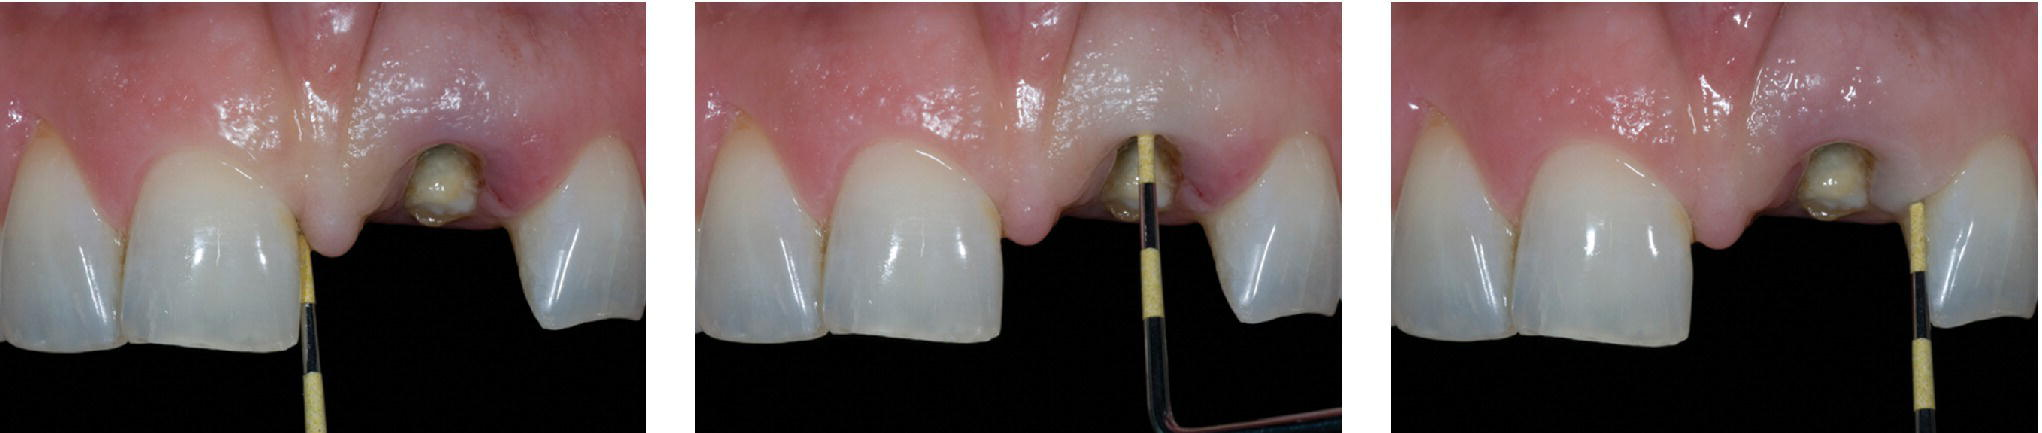 Three photos of upper set of teeth with missing left central incisor depicting osseous–gingival tissue relationship evaluated by bone sounding.